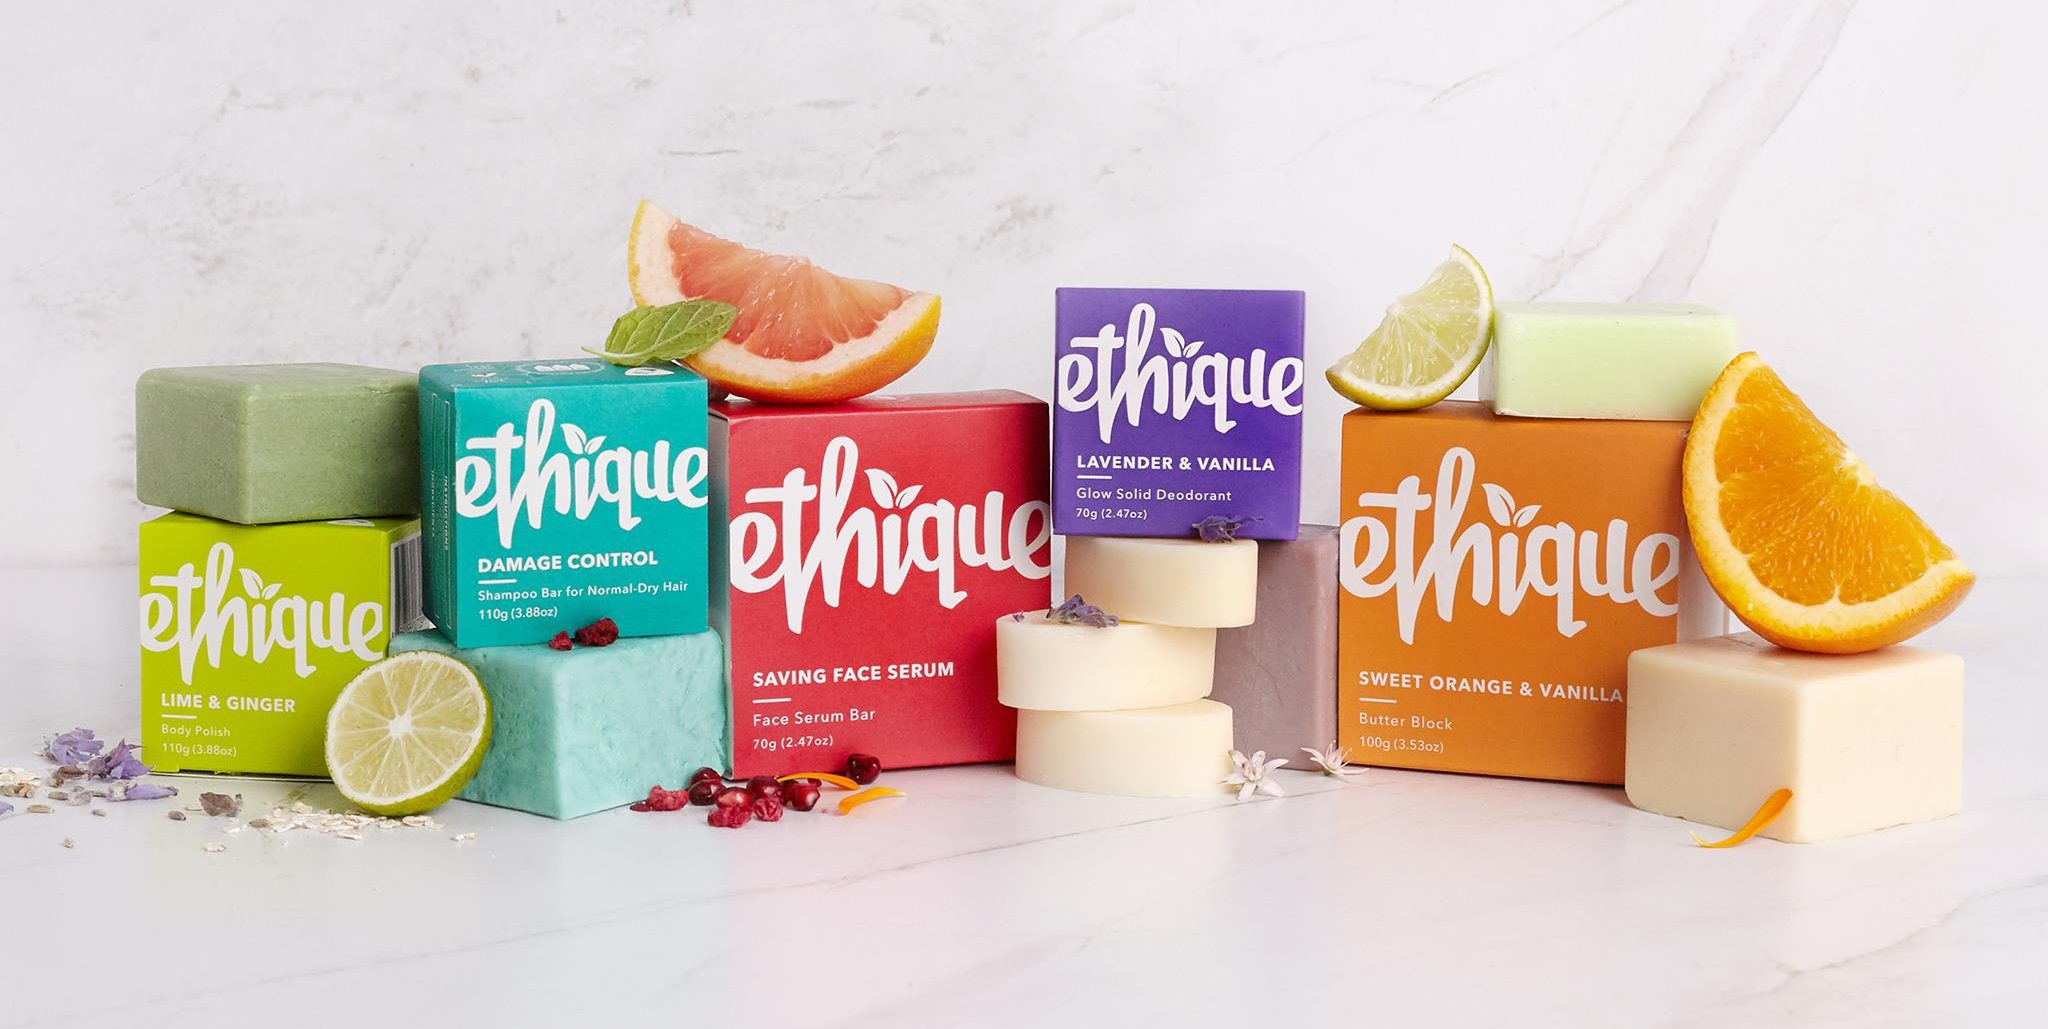 The Ethique beauty bar range